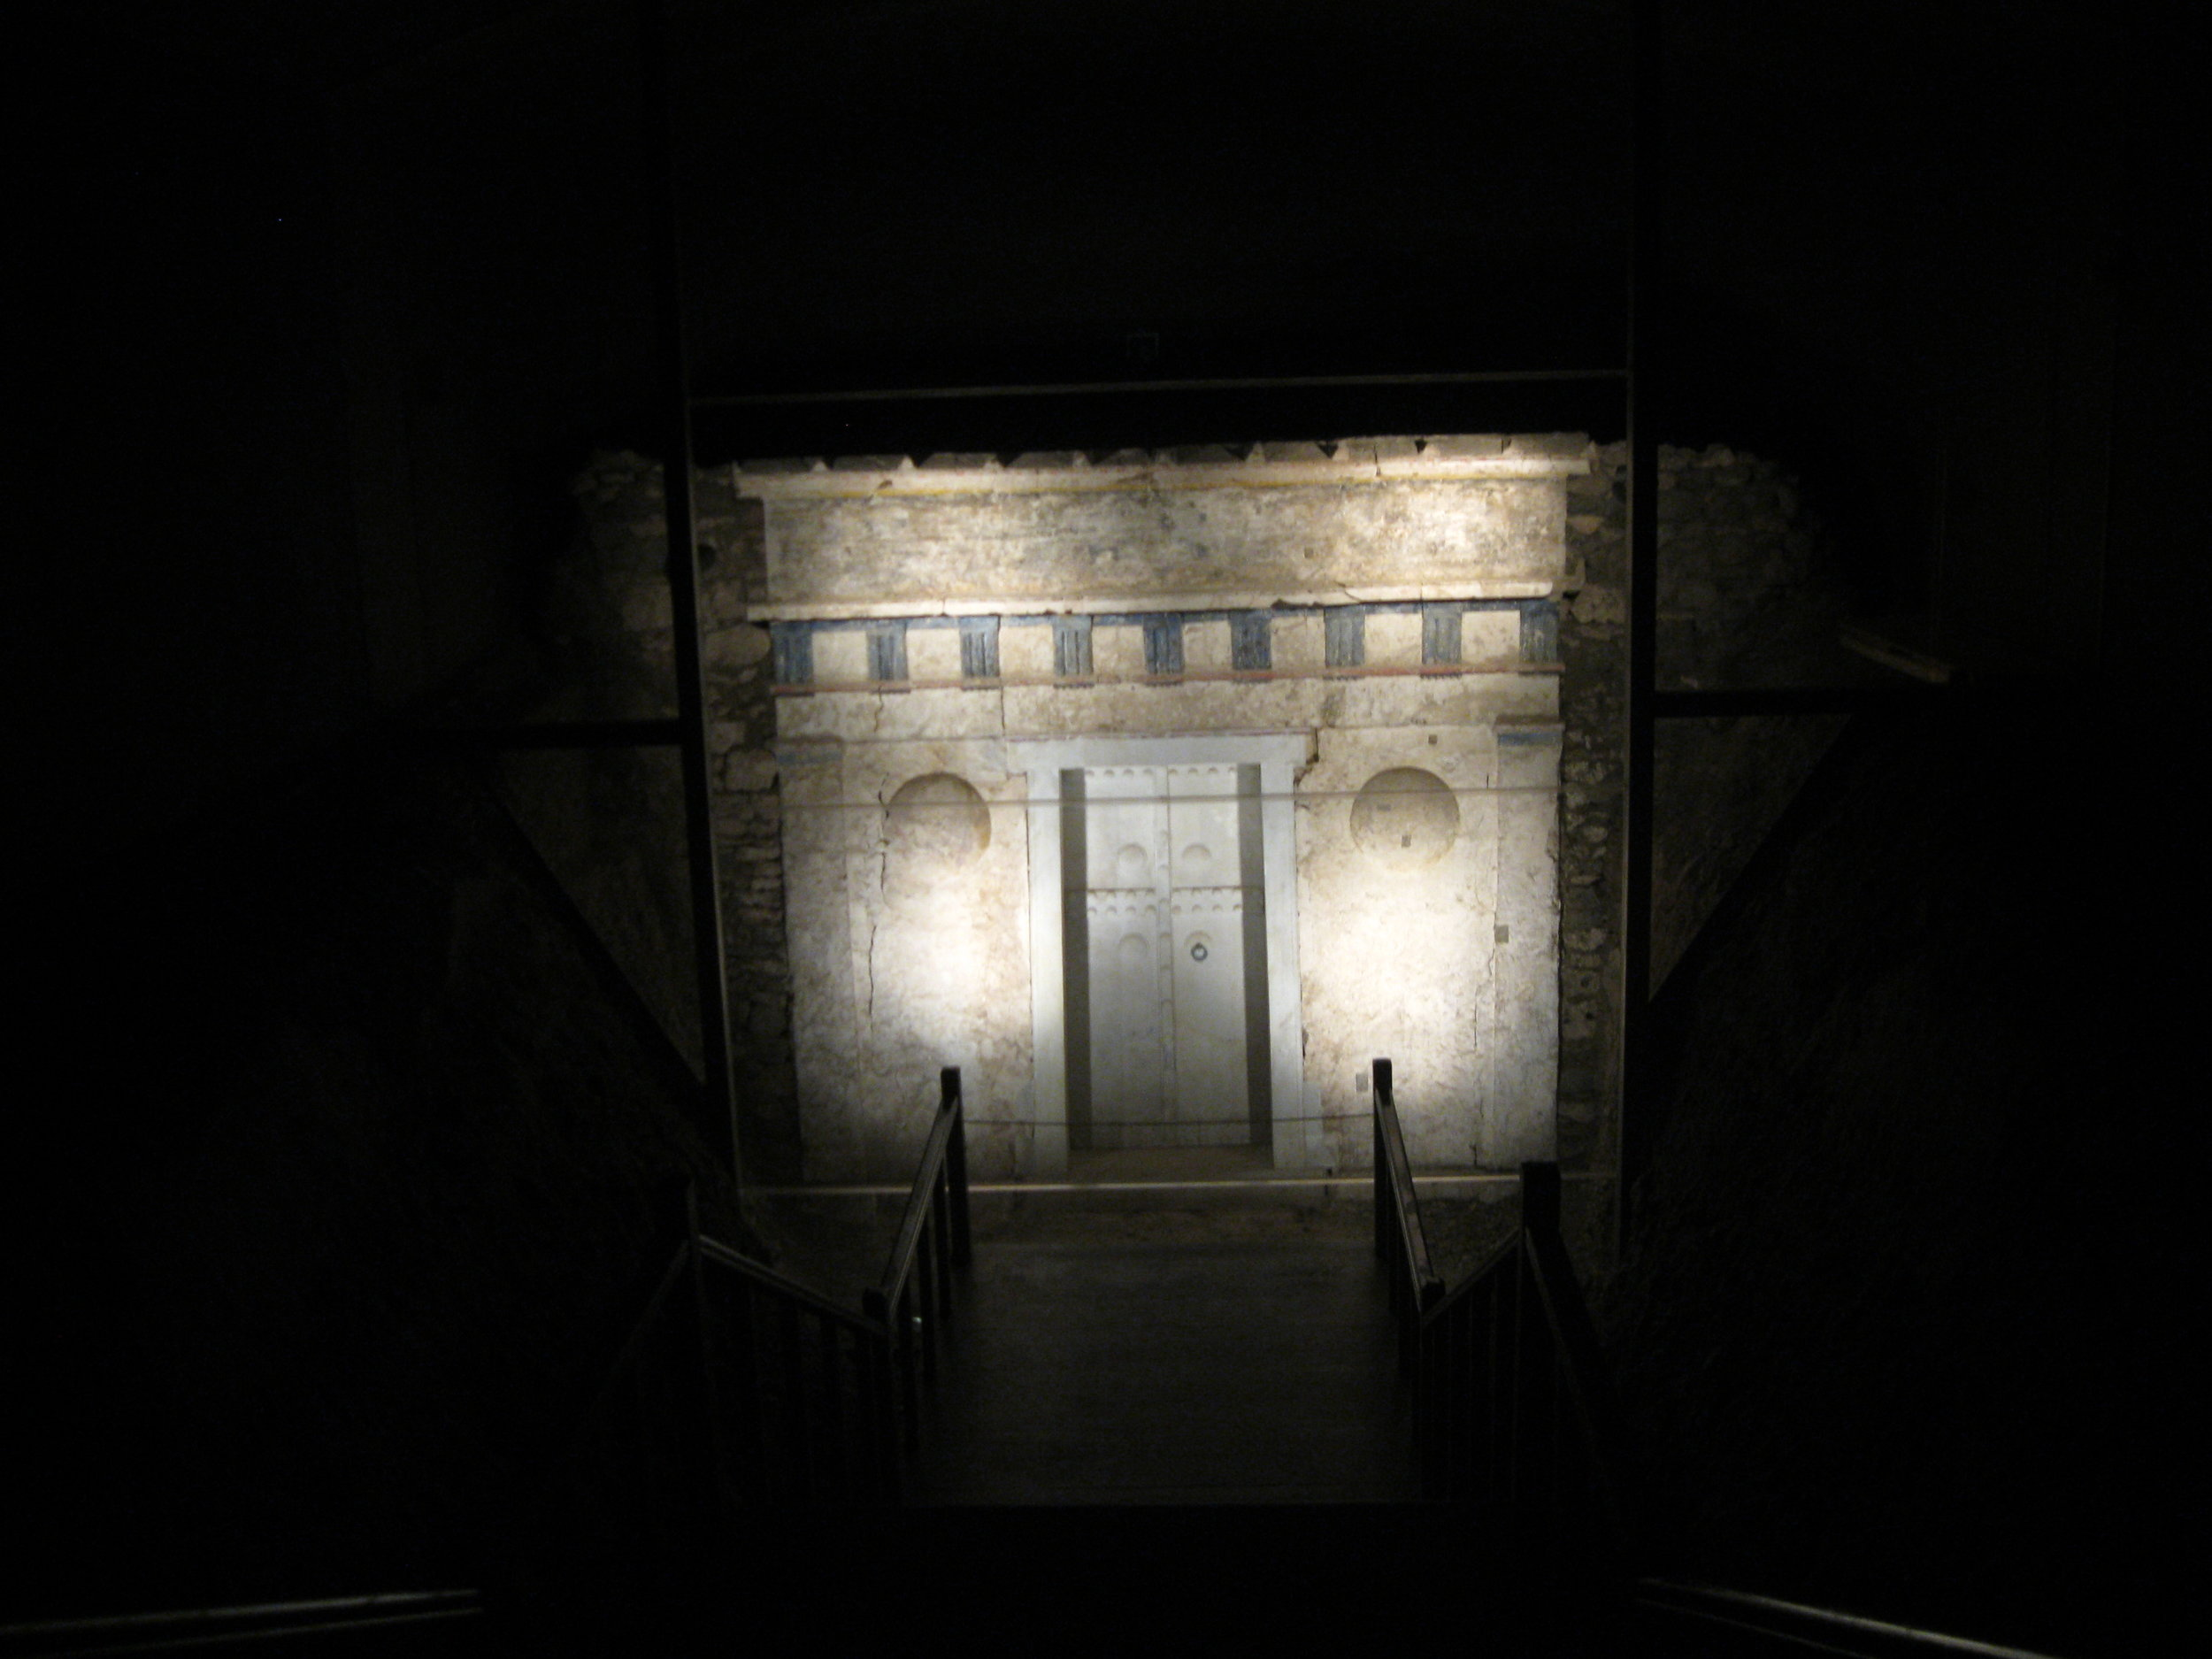 Entrance to Alexander IV's tomb. Photographs by Georgette Gouveia.